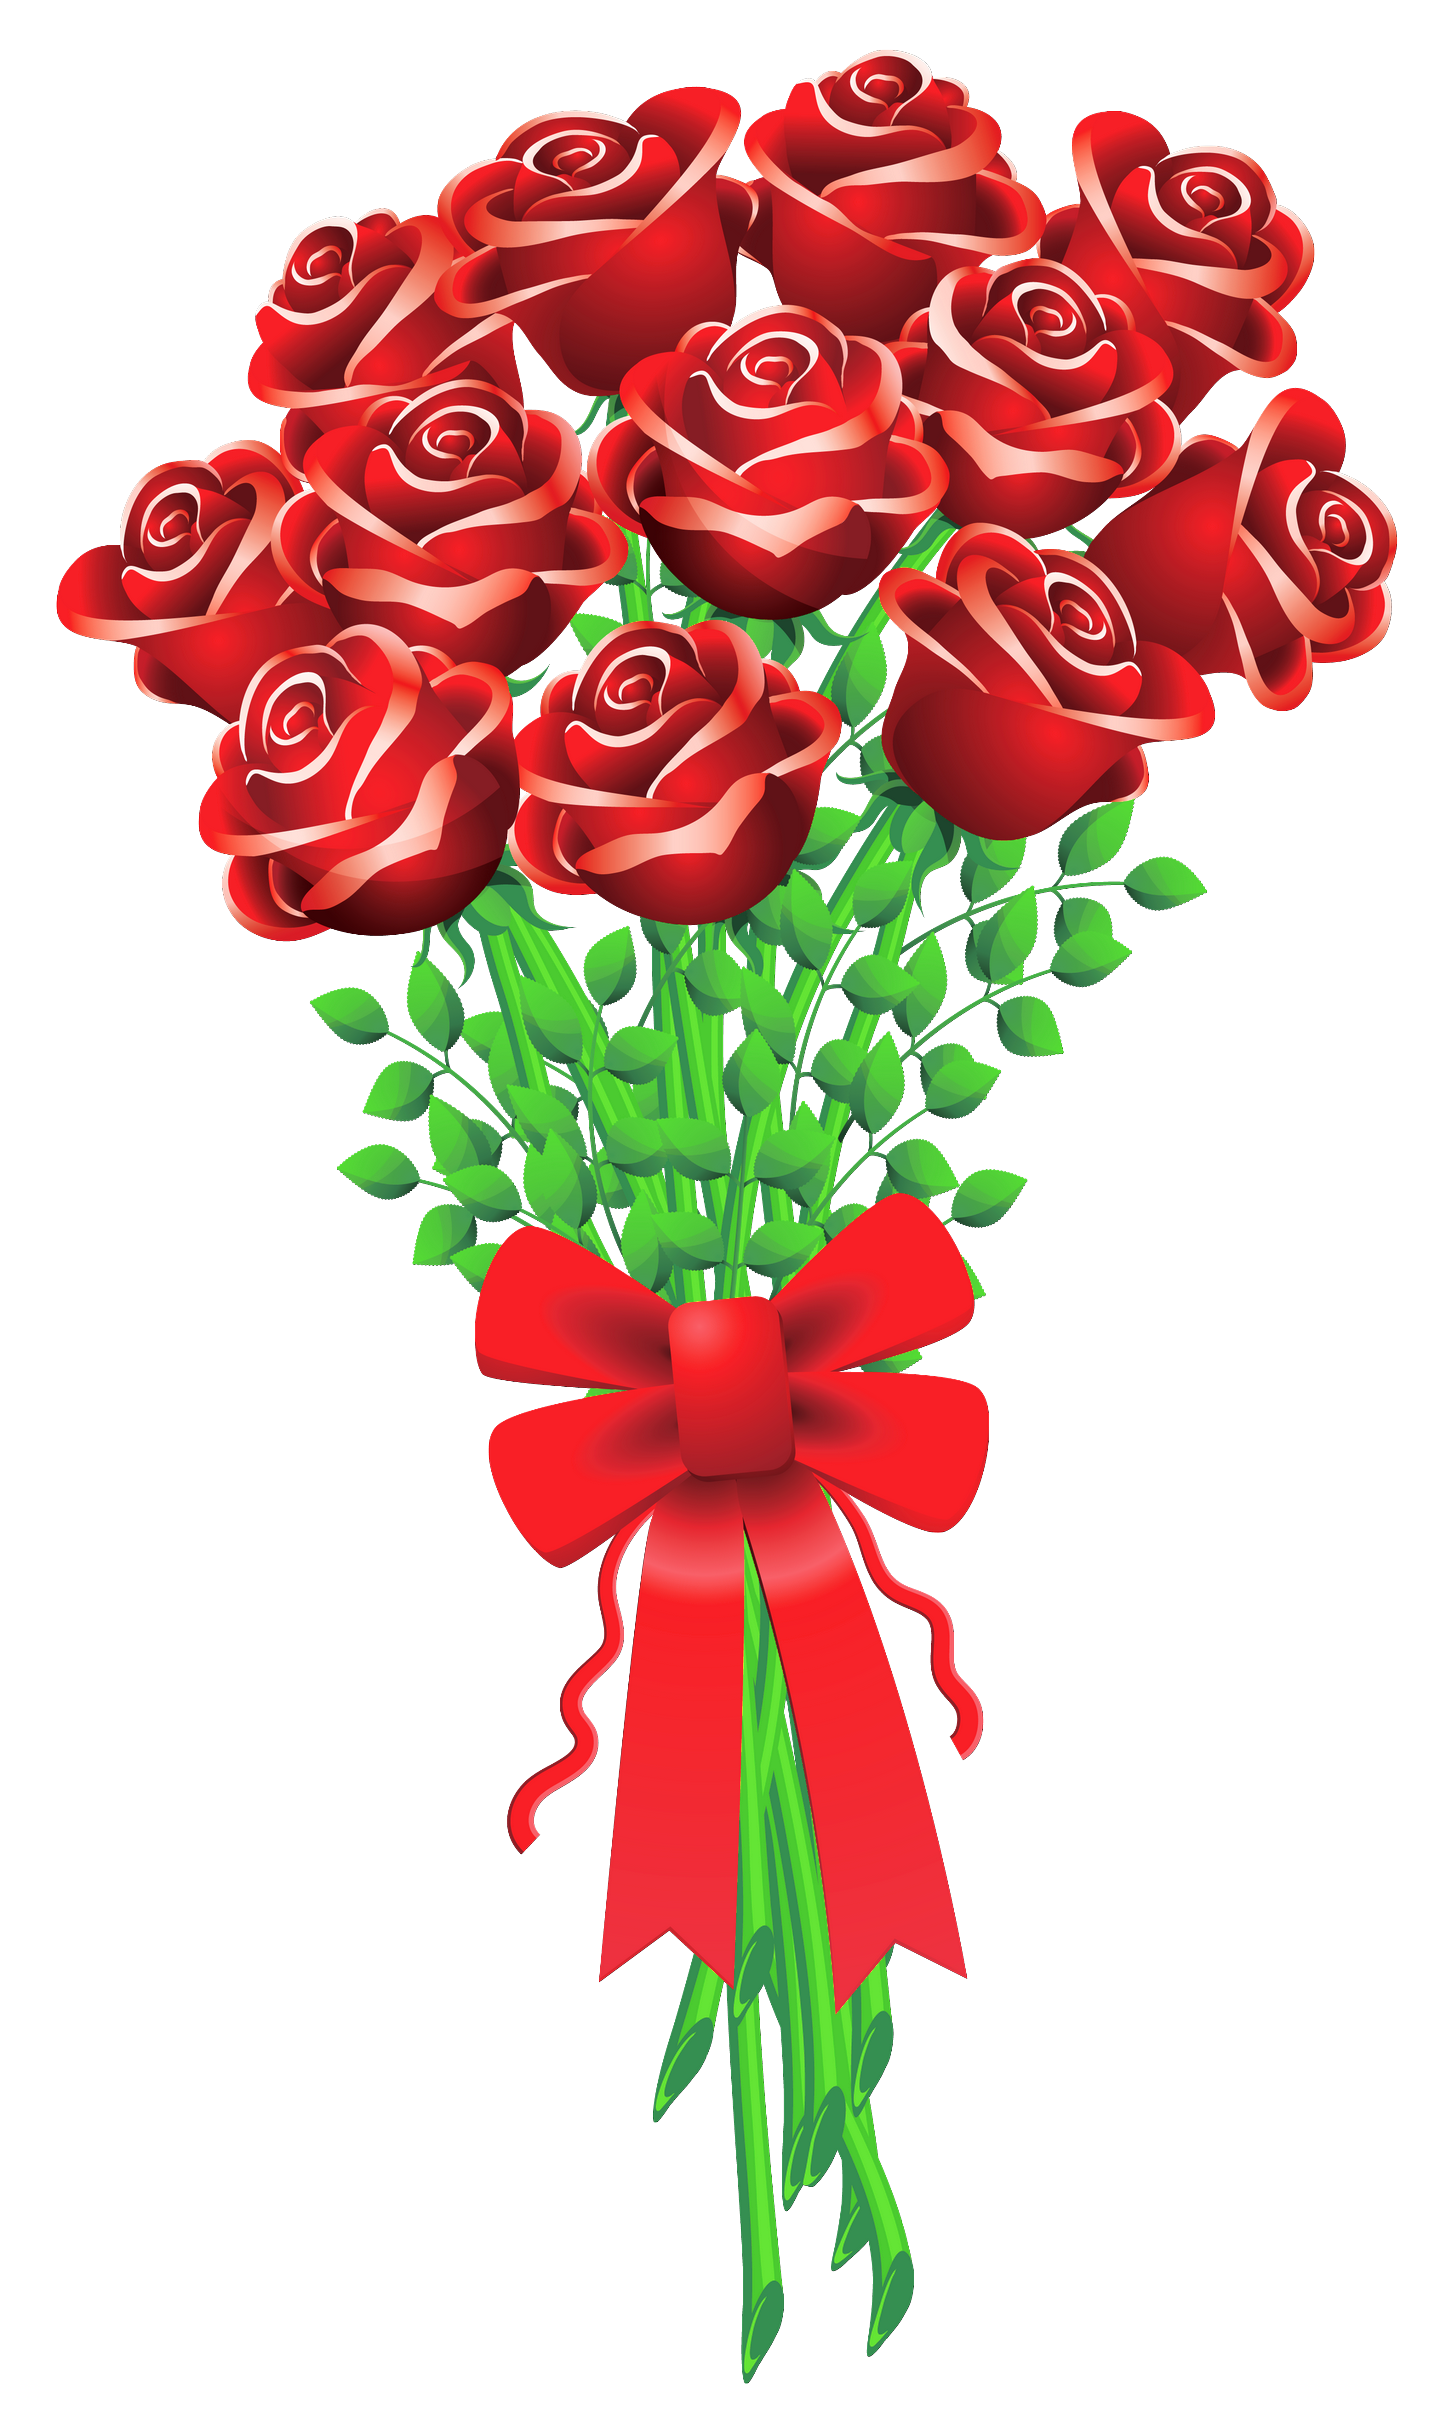 Valentines Day Roses Clipart | já | Pinterest | Clip art and Decoupage